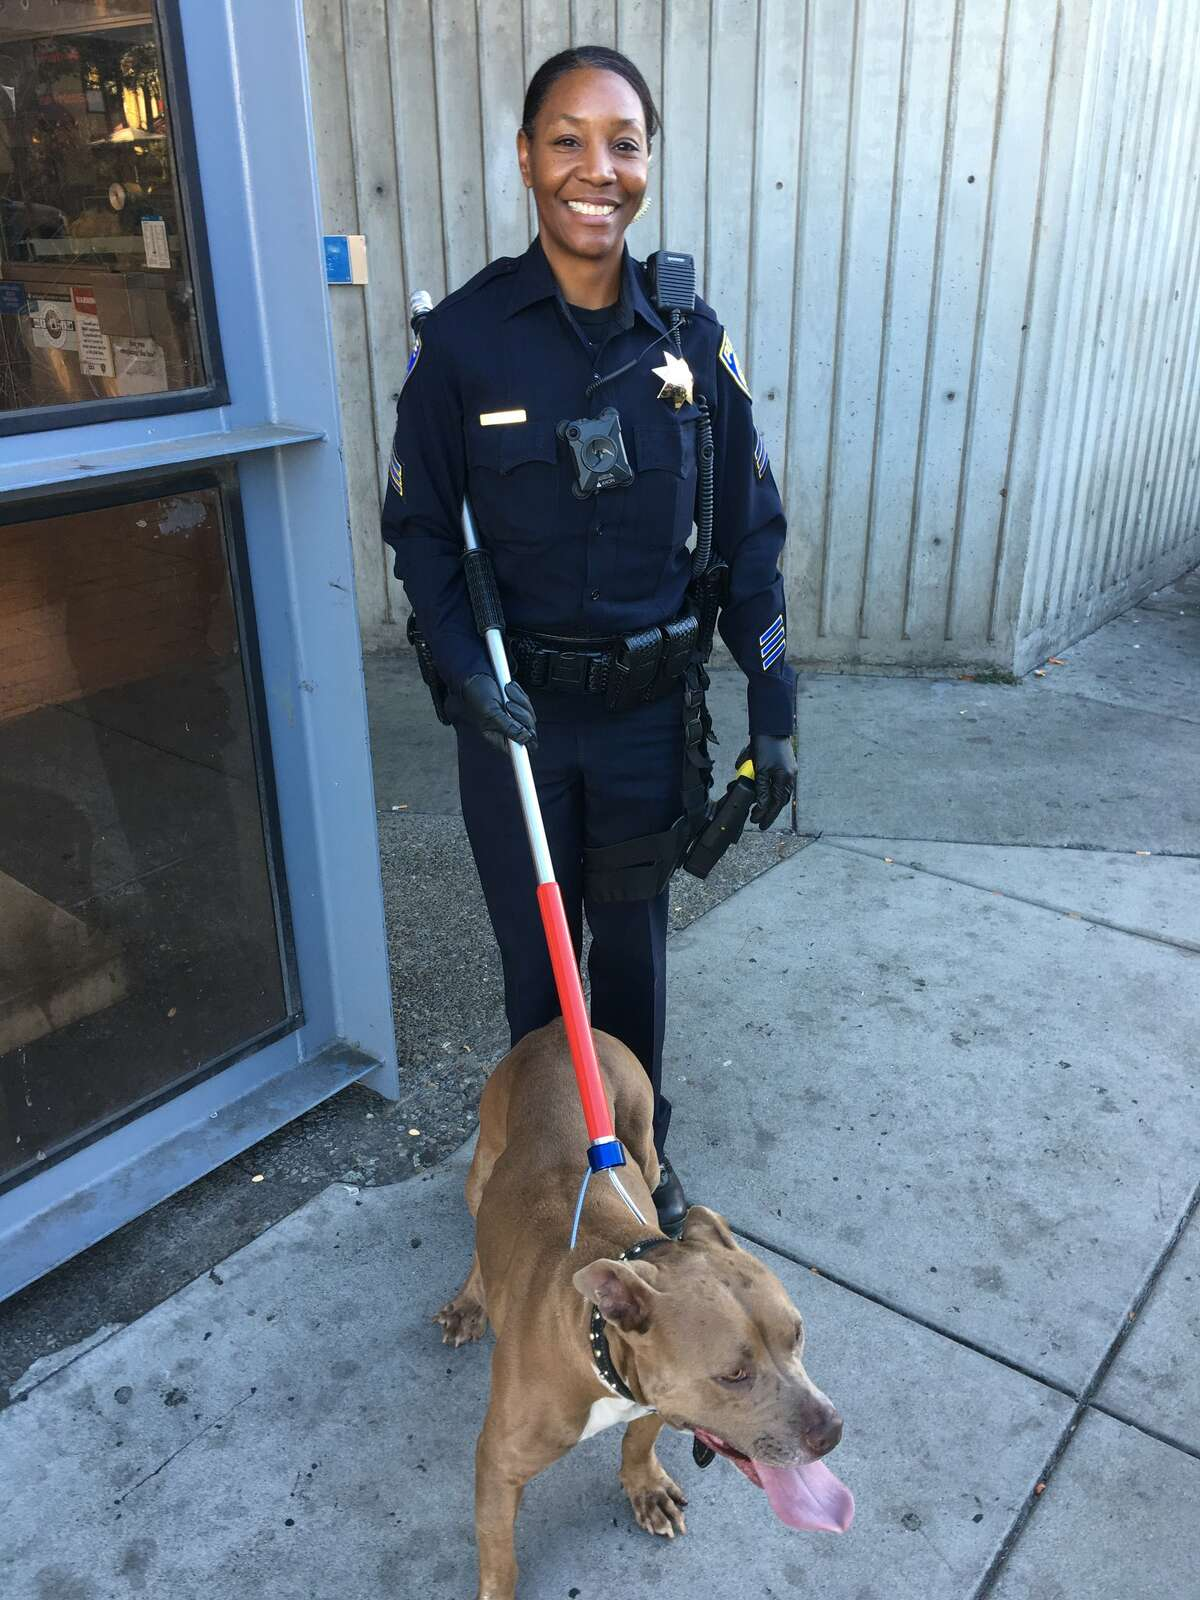 A dog was rescued from the BART tracks on Wednesday after causing delays during the morning commute.